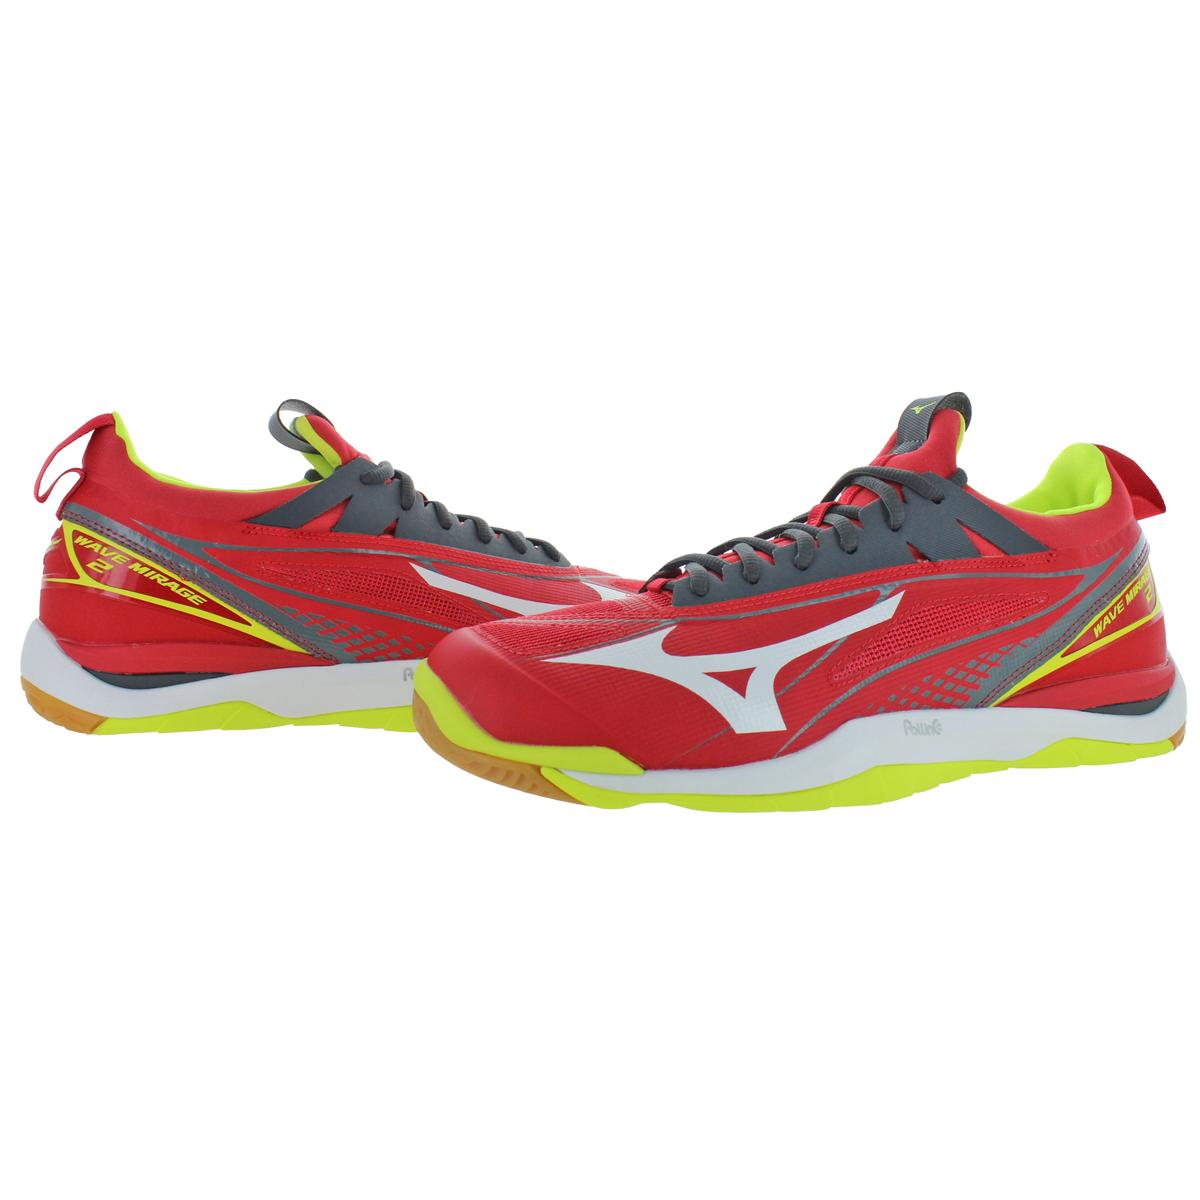 Mizuno-Mens-Wave-Mirage-2-Non-Marking-Handball-Lace-Up-Sneakers-Shoes-BHFO-9072 thumbnail 8